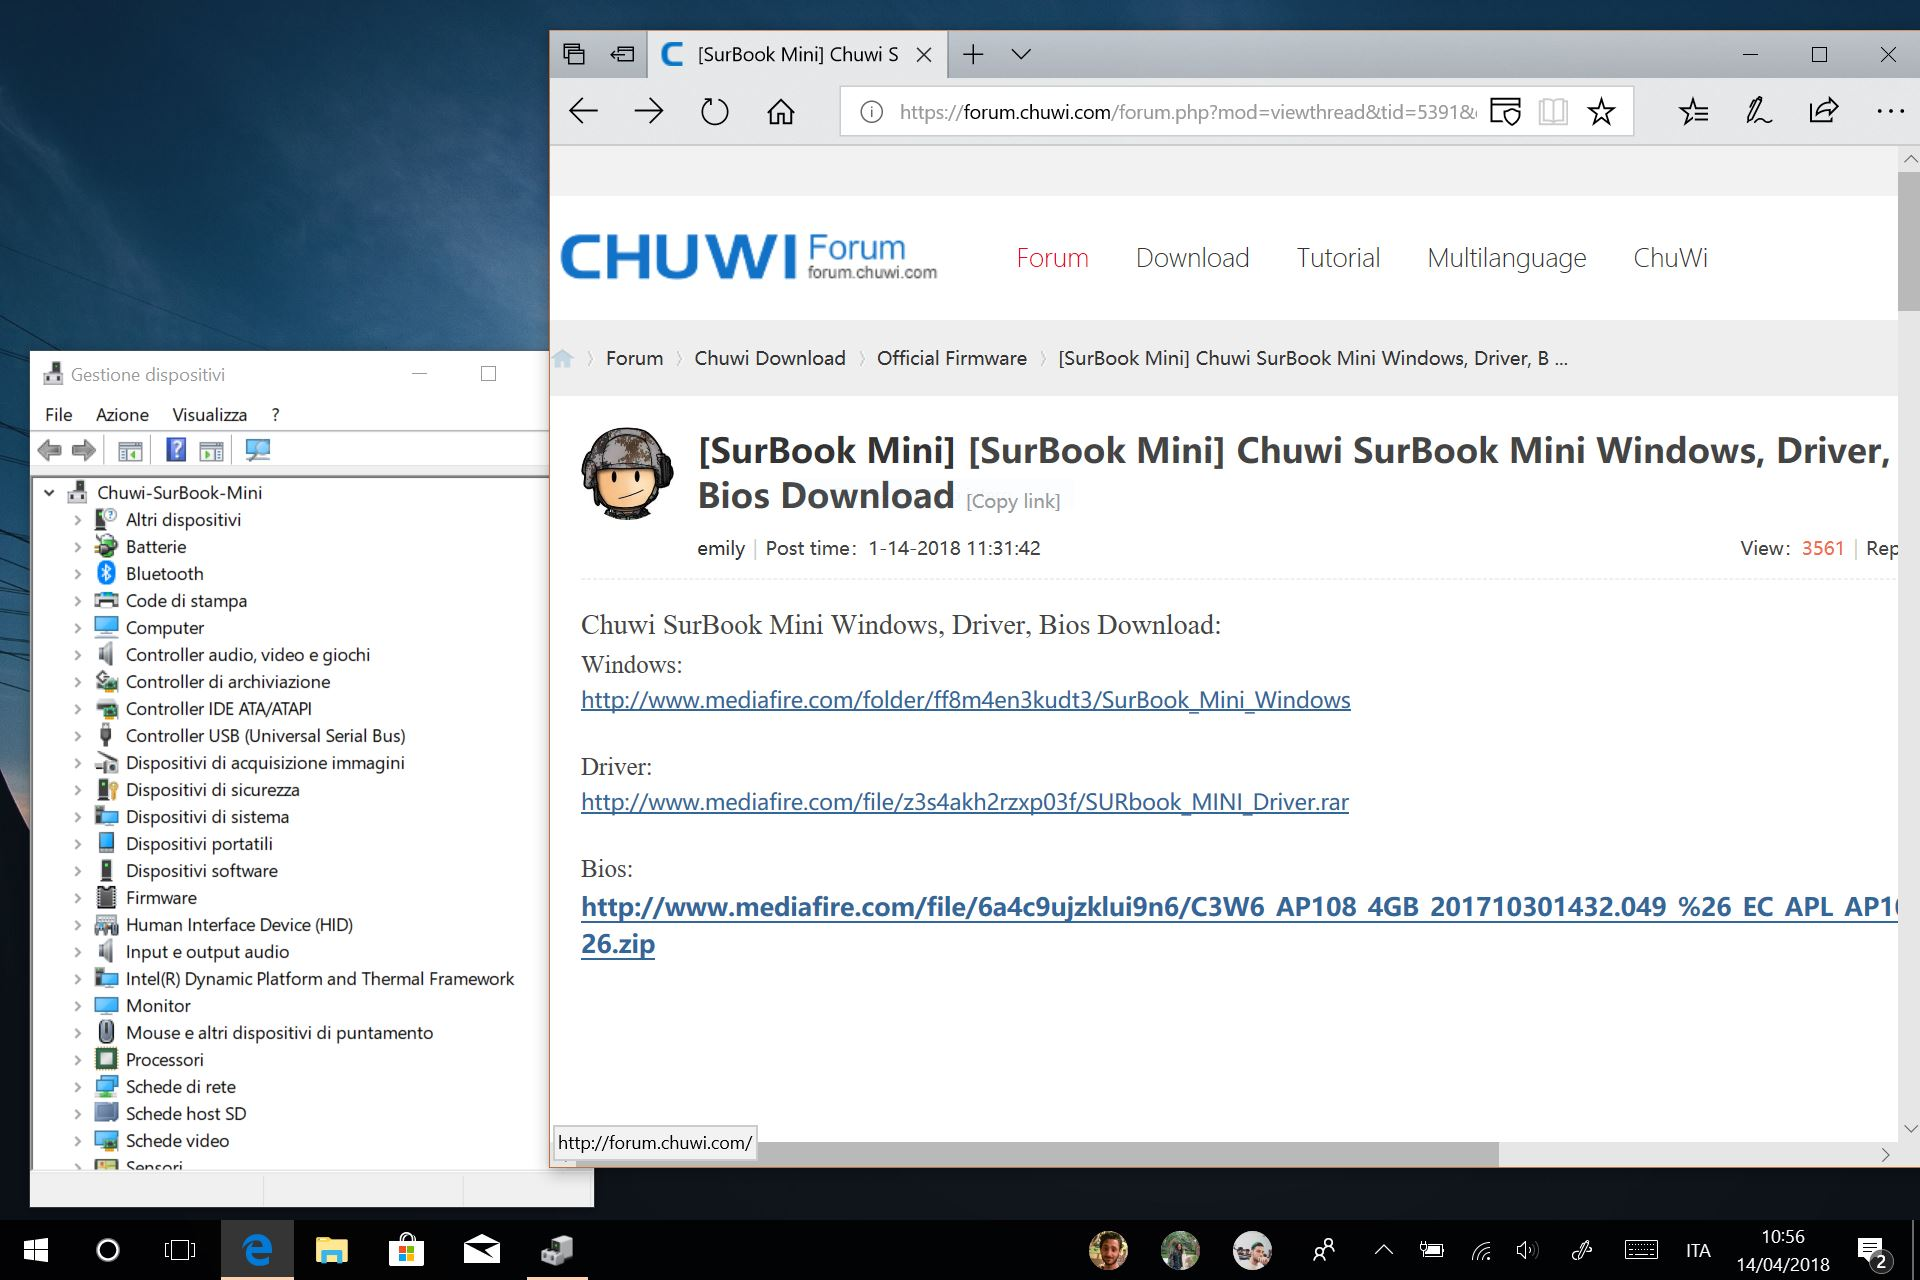 Chuwi SurBook Mini driver